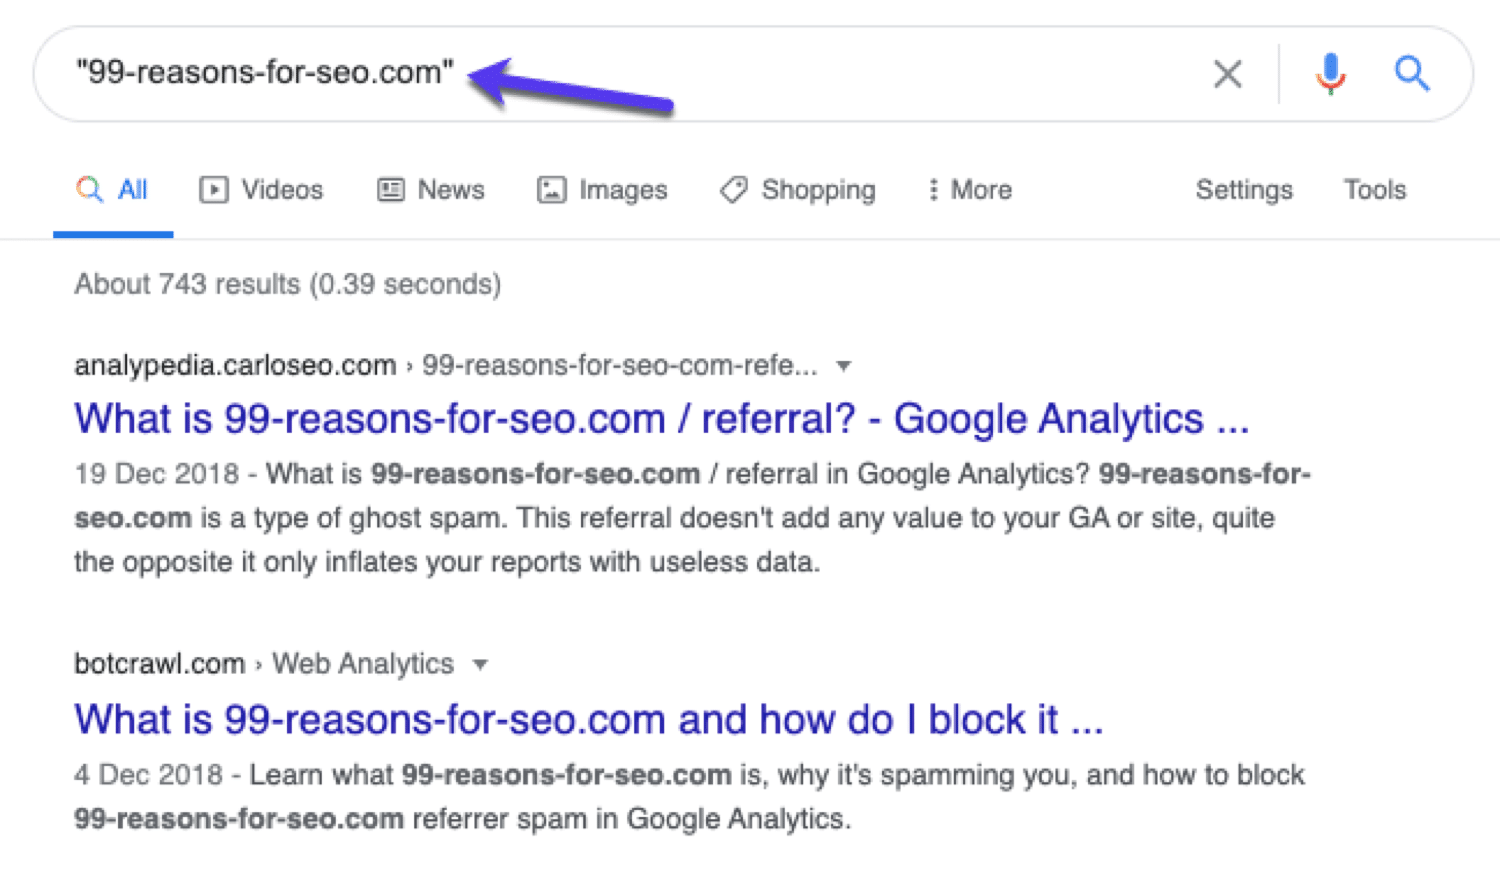 Search for spam referrer sites in Google to see if others sites have flagged them before